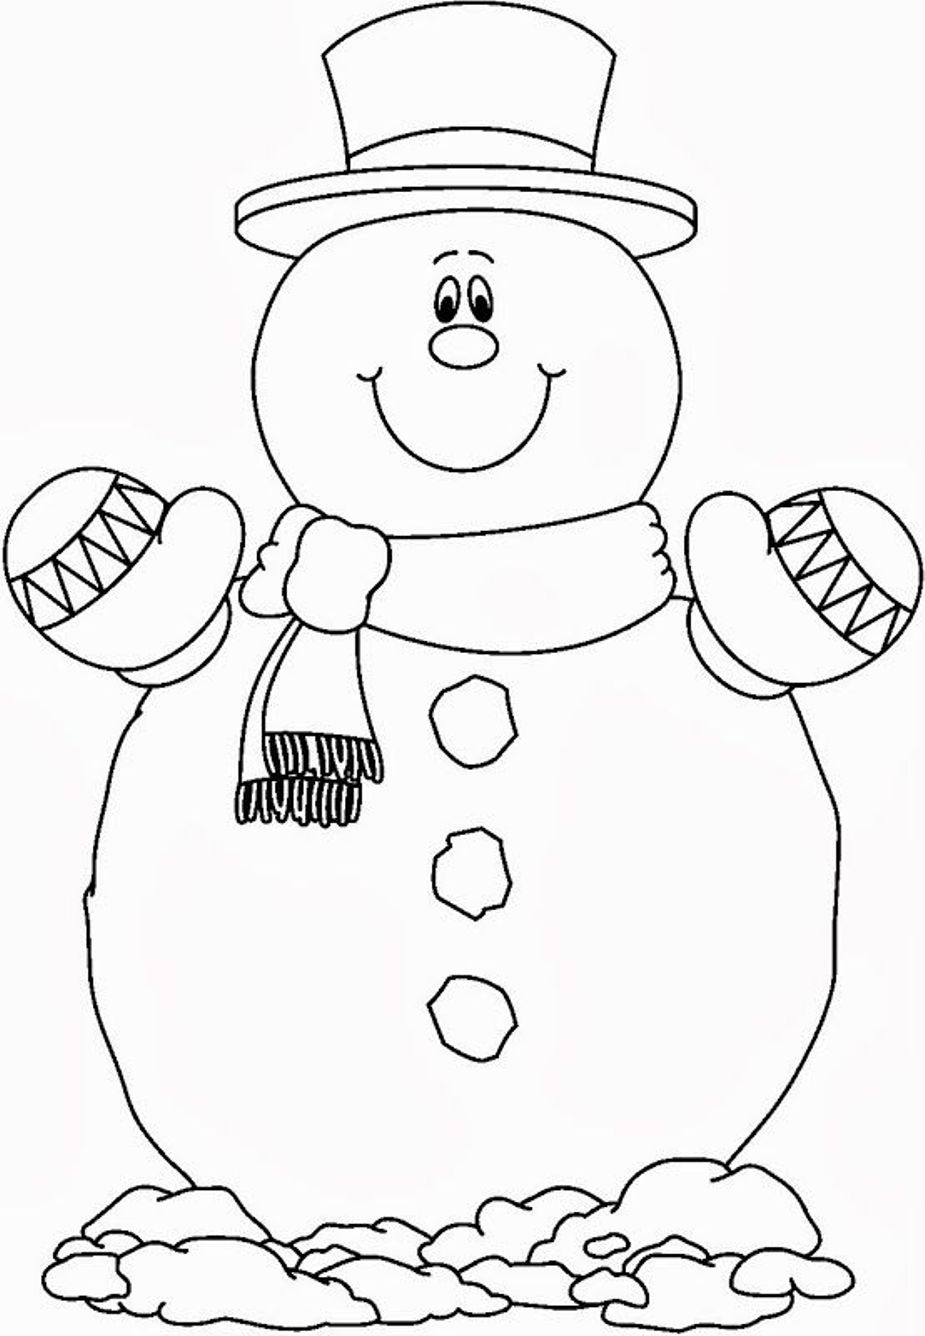 coloring snowman snowman coloring pages at getdrawings free download snowman coloring